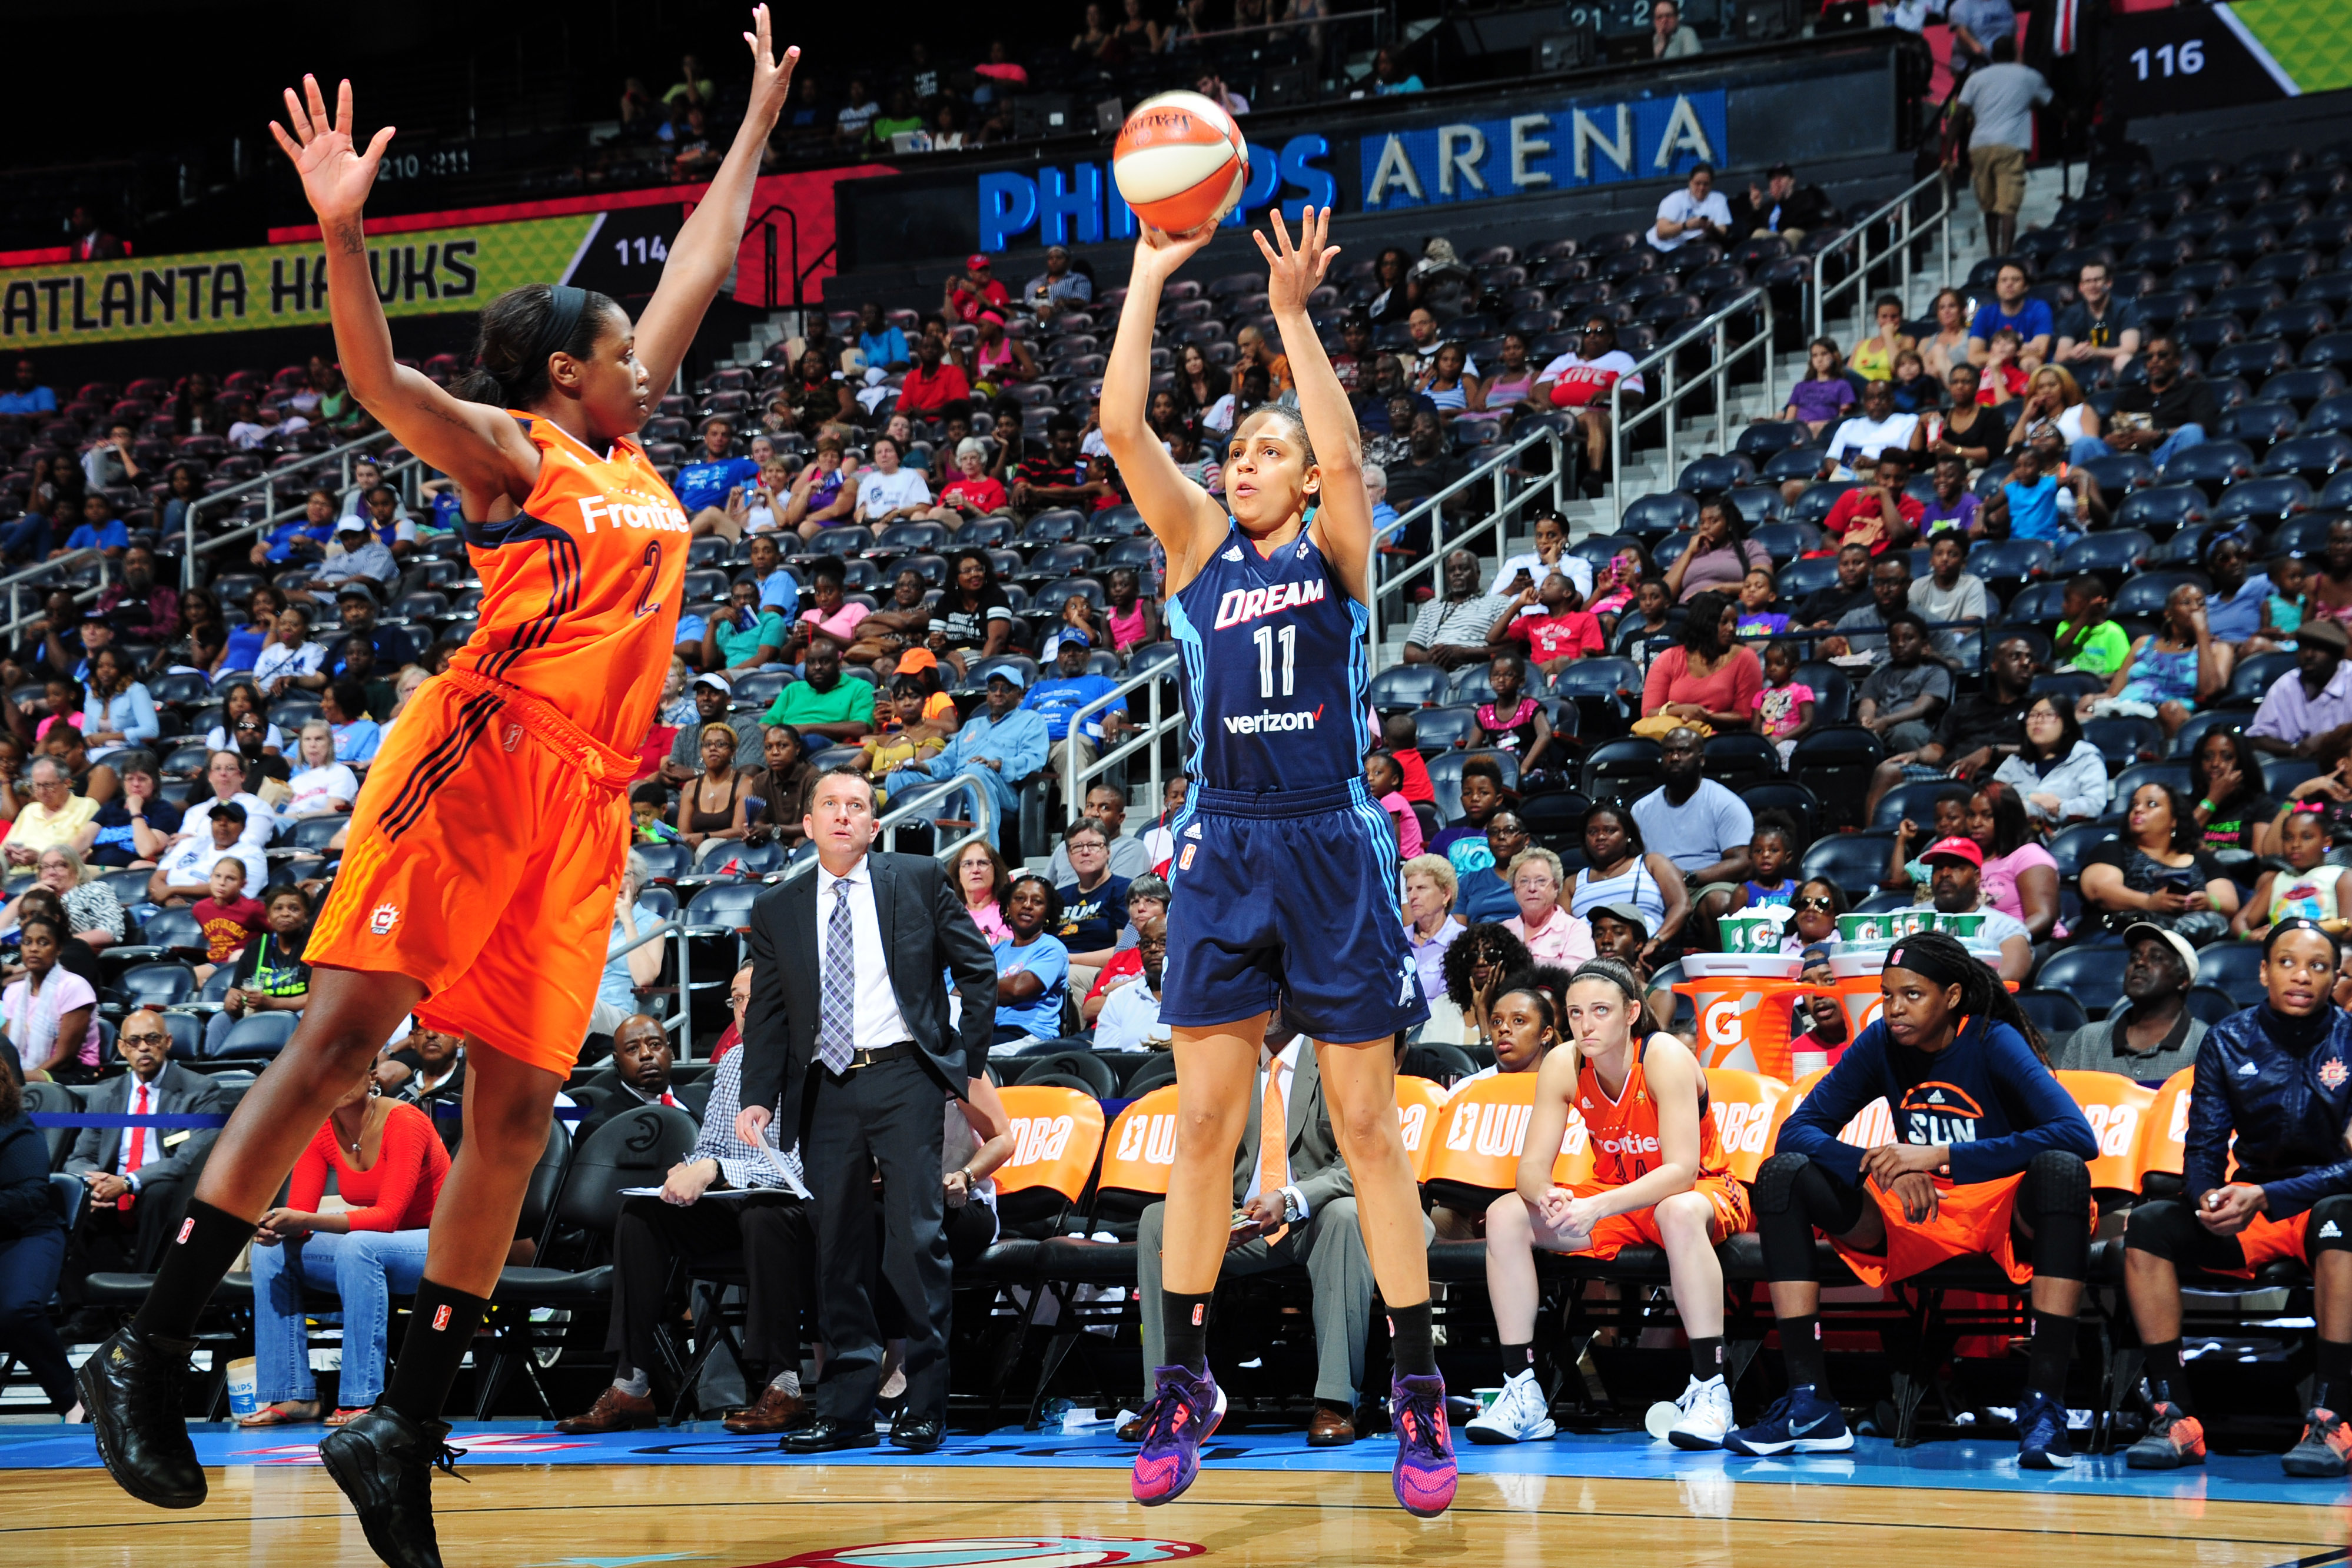 ATLANTA, GA - JUNE 12: Cierra Burdick #11 of the Atlanta Dream shoots against the Connecticut Sun during the game on June 12, 2016 at Philips Arena in Atlanta, Georgia. NOTE TO USER: User expressly acknowledges and agrees that, by downloading and or using this Photograph, user is consenting to the terms and conditions of the Getty Images License Agreement. Mandatory Copyright Notice: Copyright 2016 NBAE (Photo by Scott Cunningham/NBAE via Getty Images)